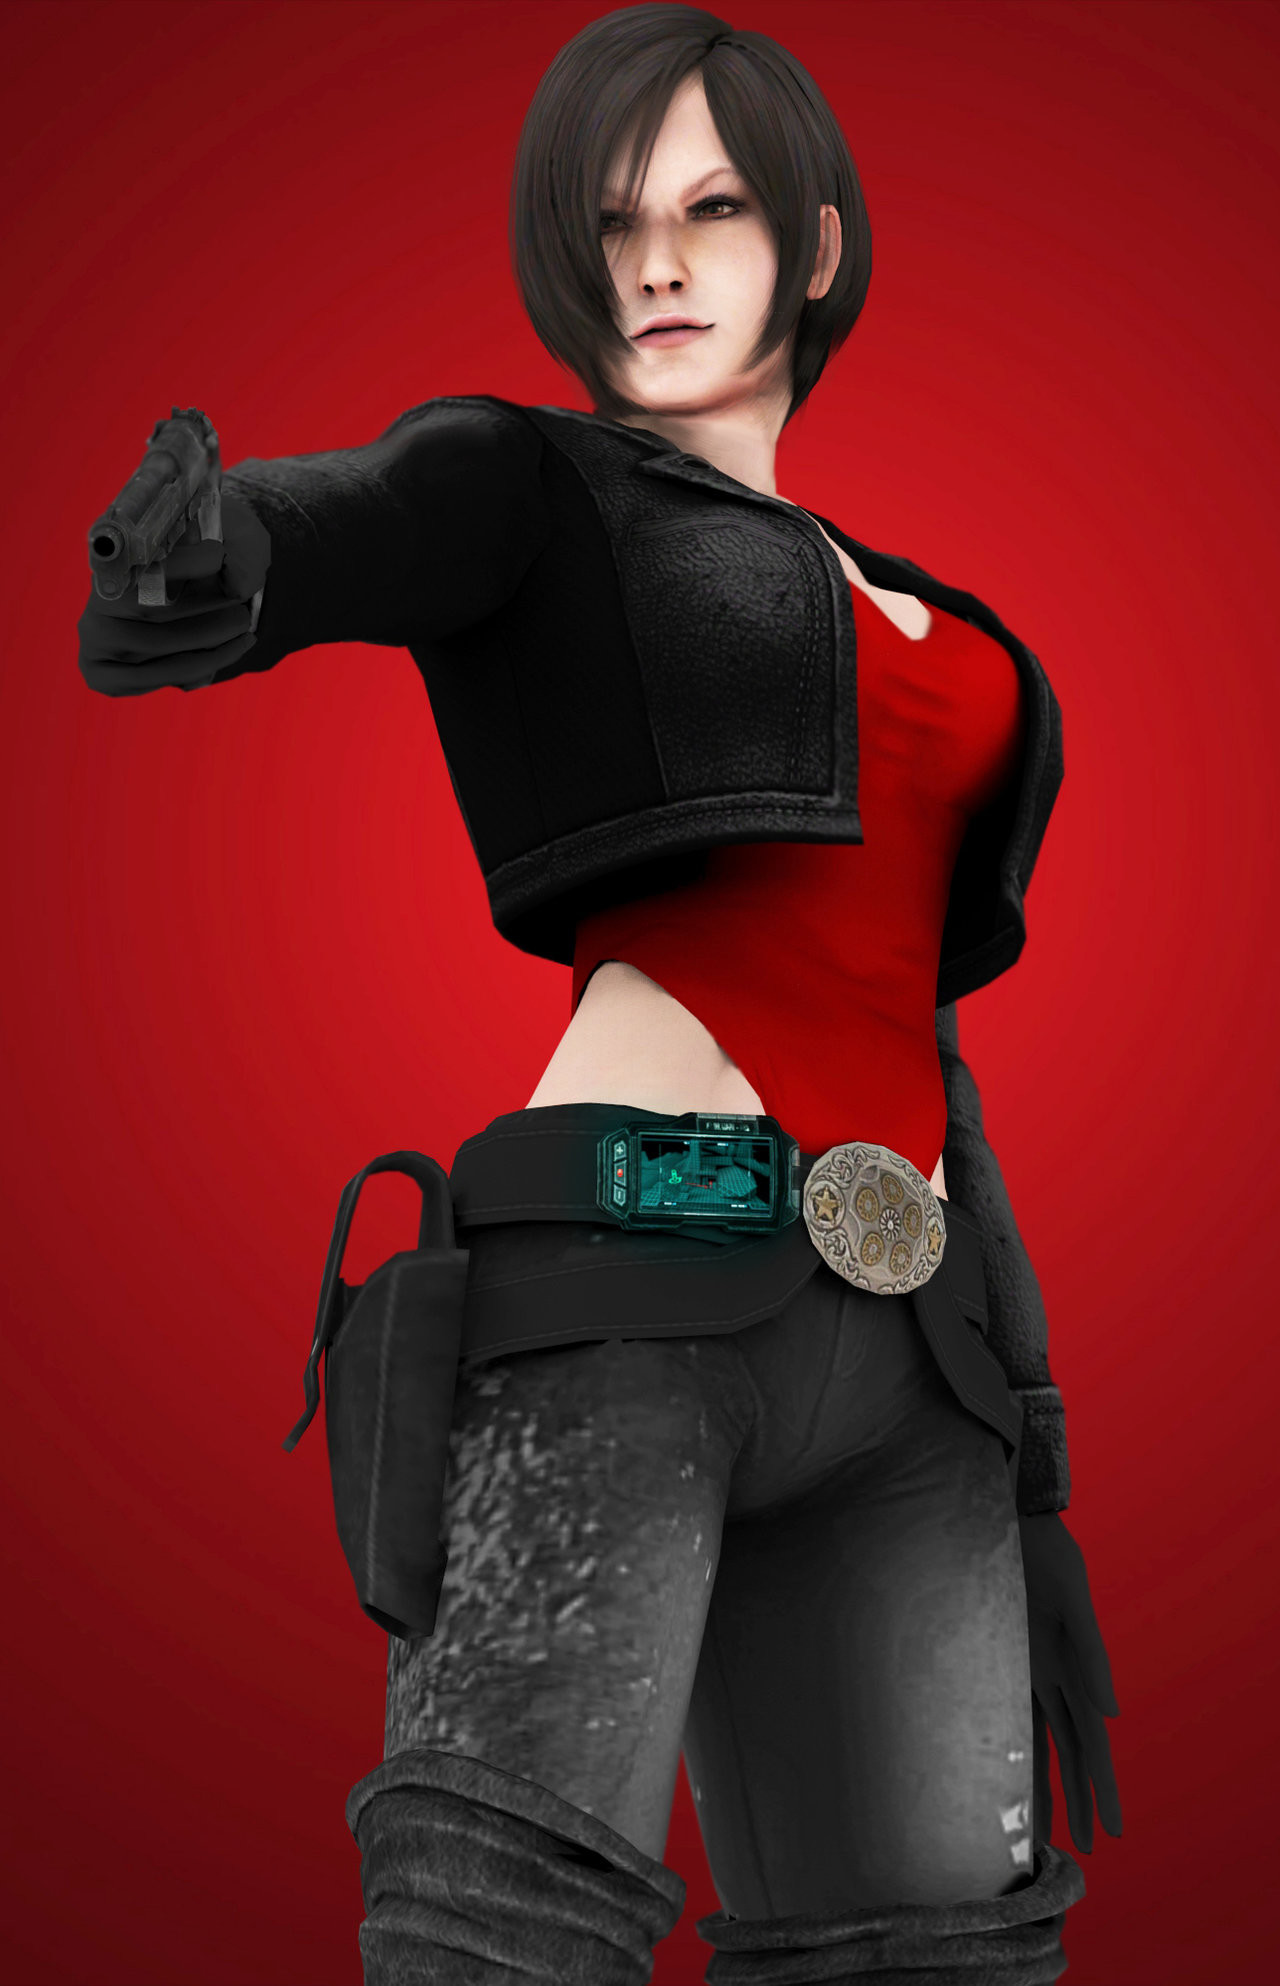 1280x1986 walienn 22 3 ada wong - finish him by walienn